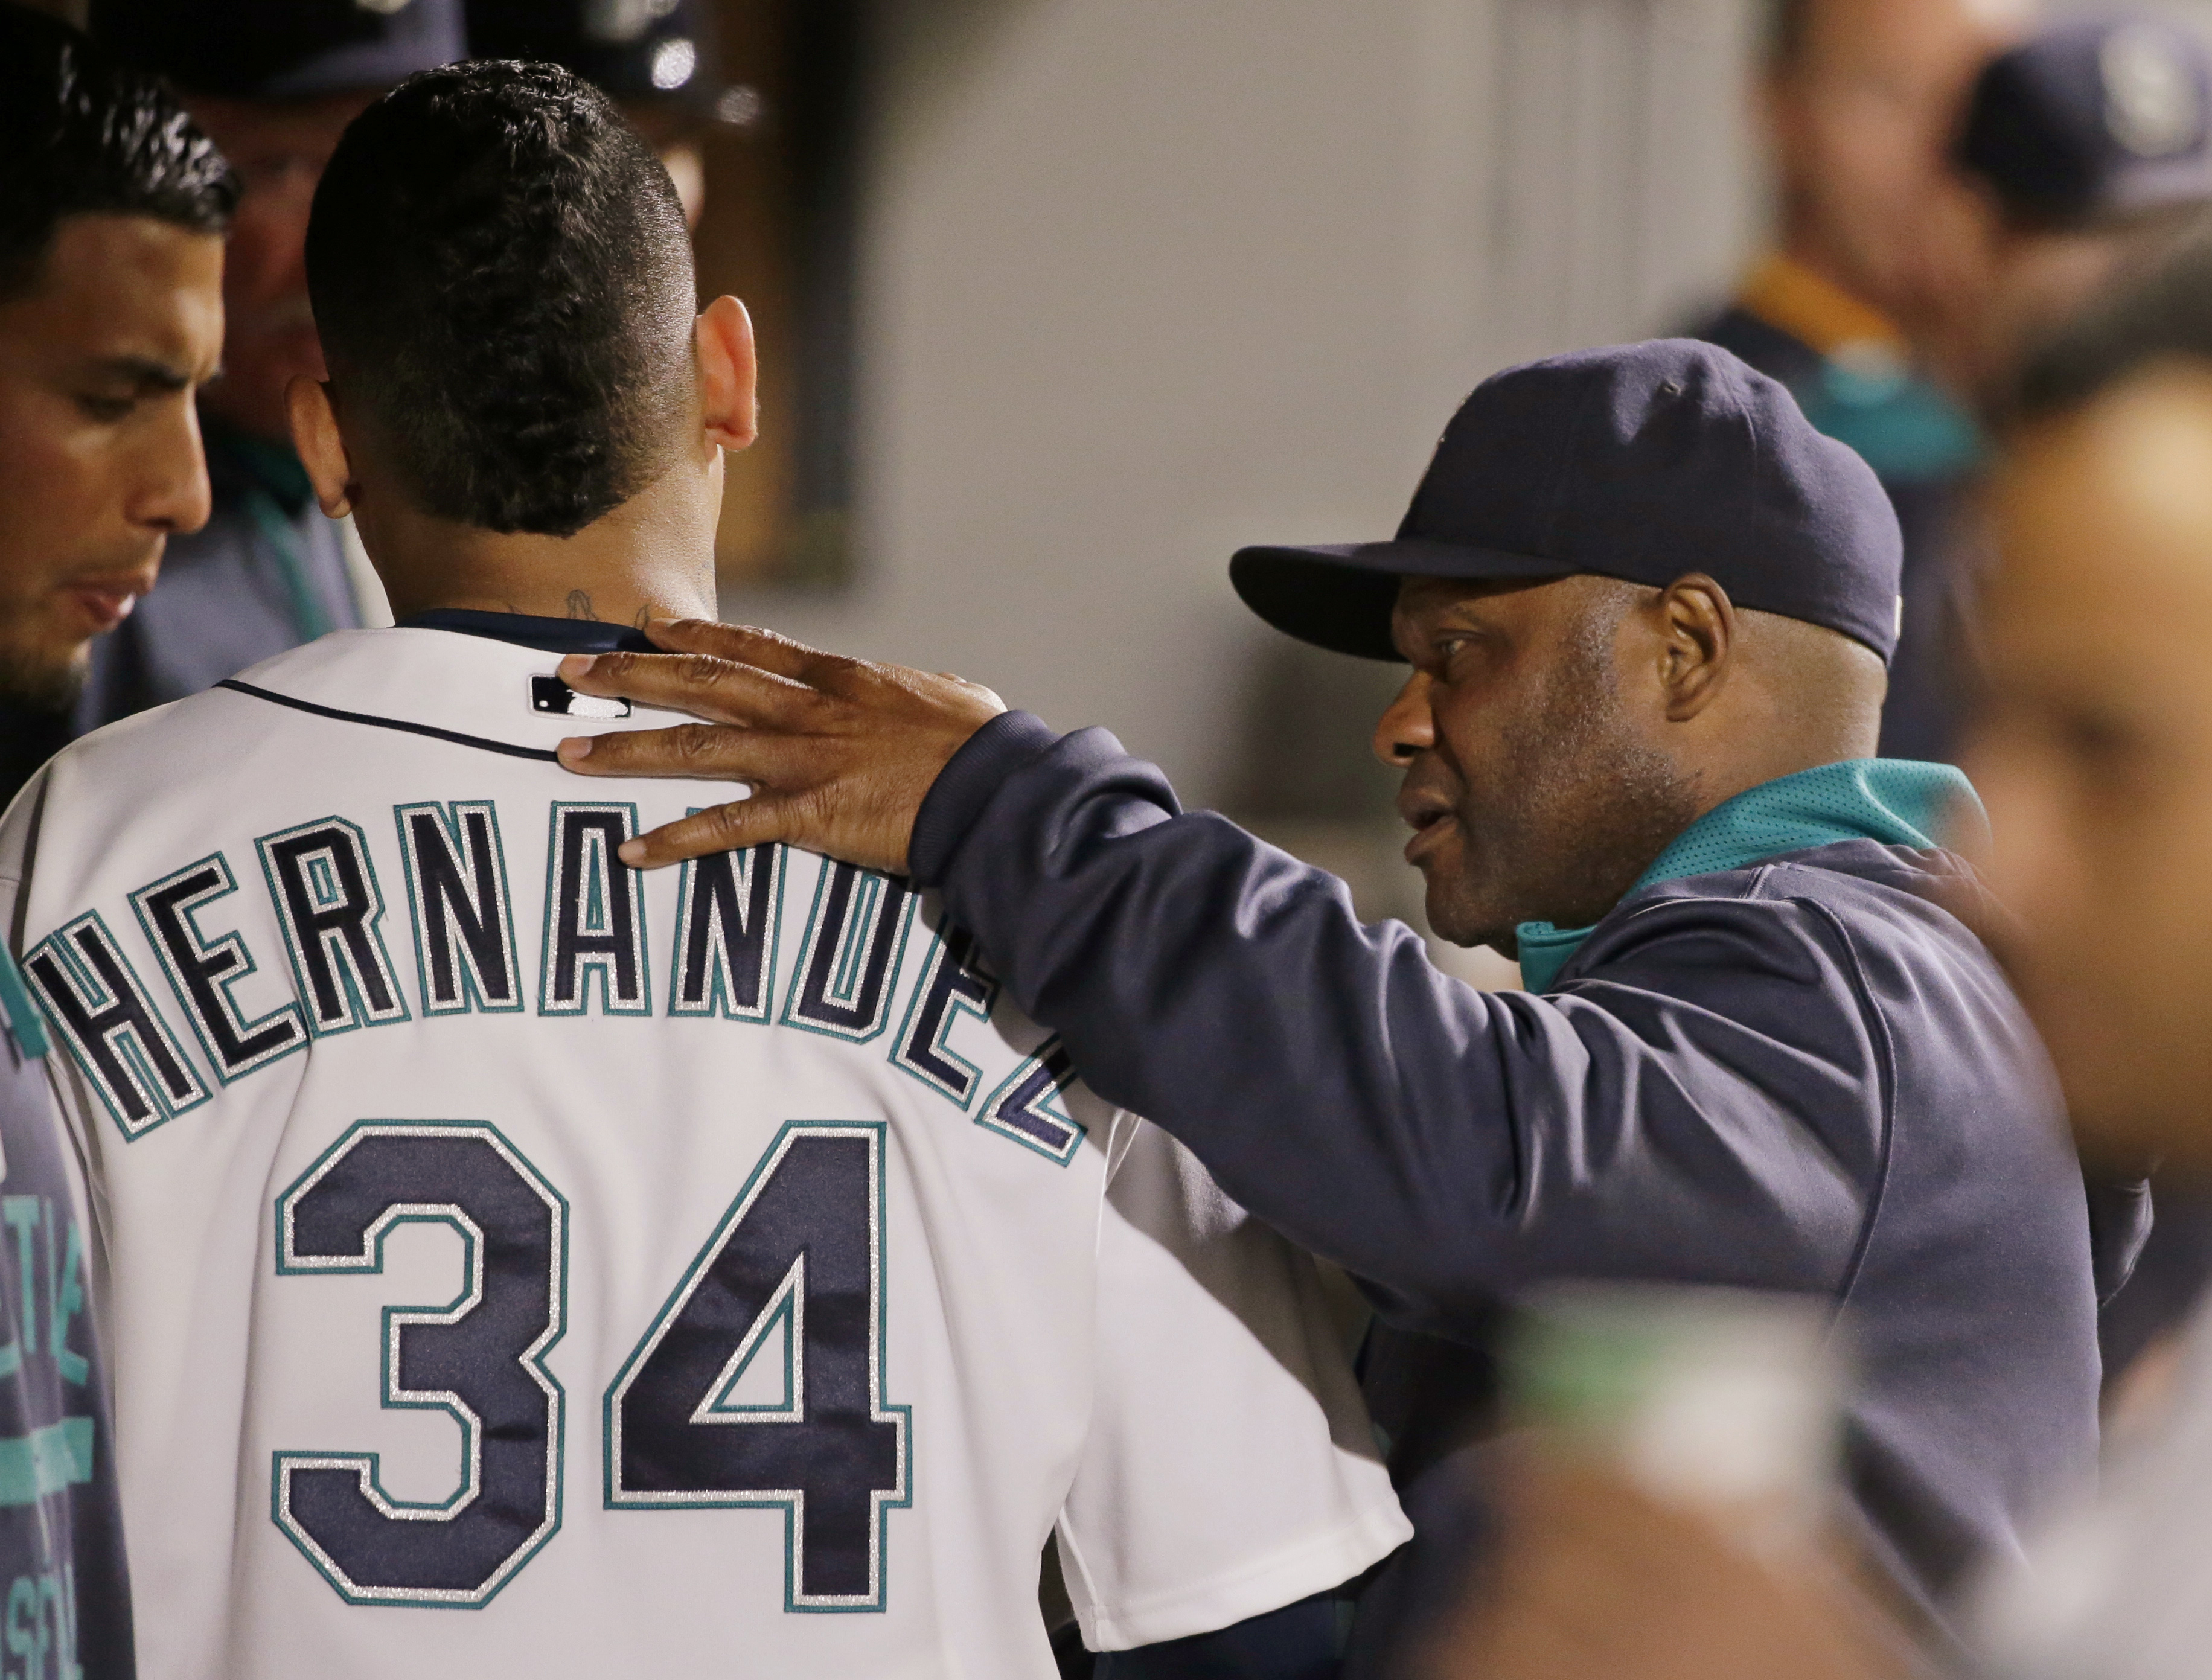 Seattle Mariners manager Lloyd McClendon, right, tells starting pitcher Felix Hernandez that he's pulling him from the baseball game against the Los Angeles Angels following the seventh inning, Tuesday, Sept. 15, 2015, in Seattle. (AP Photo/Ted S. Warren)